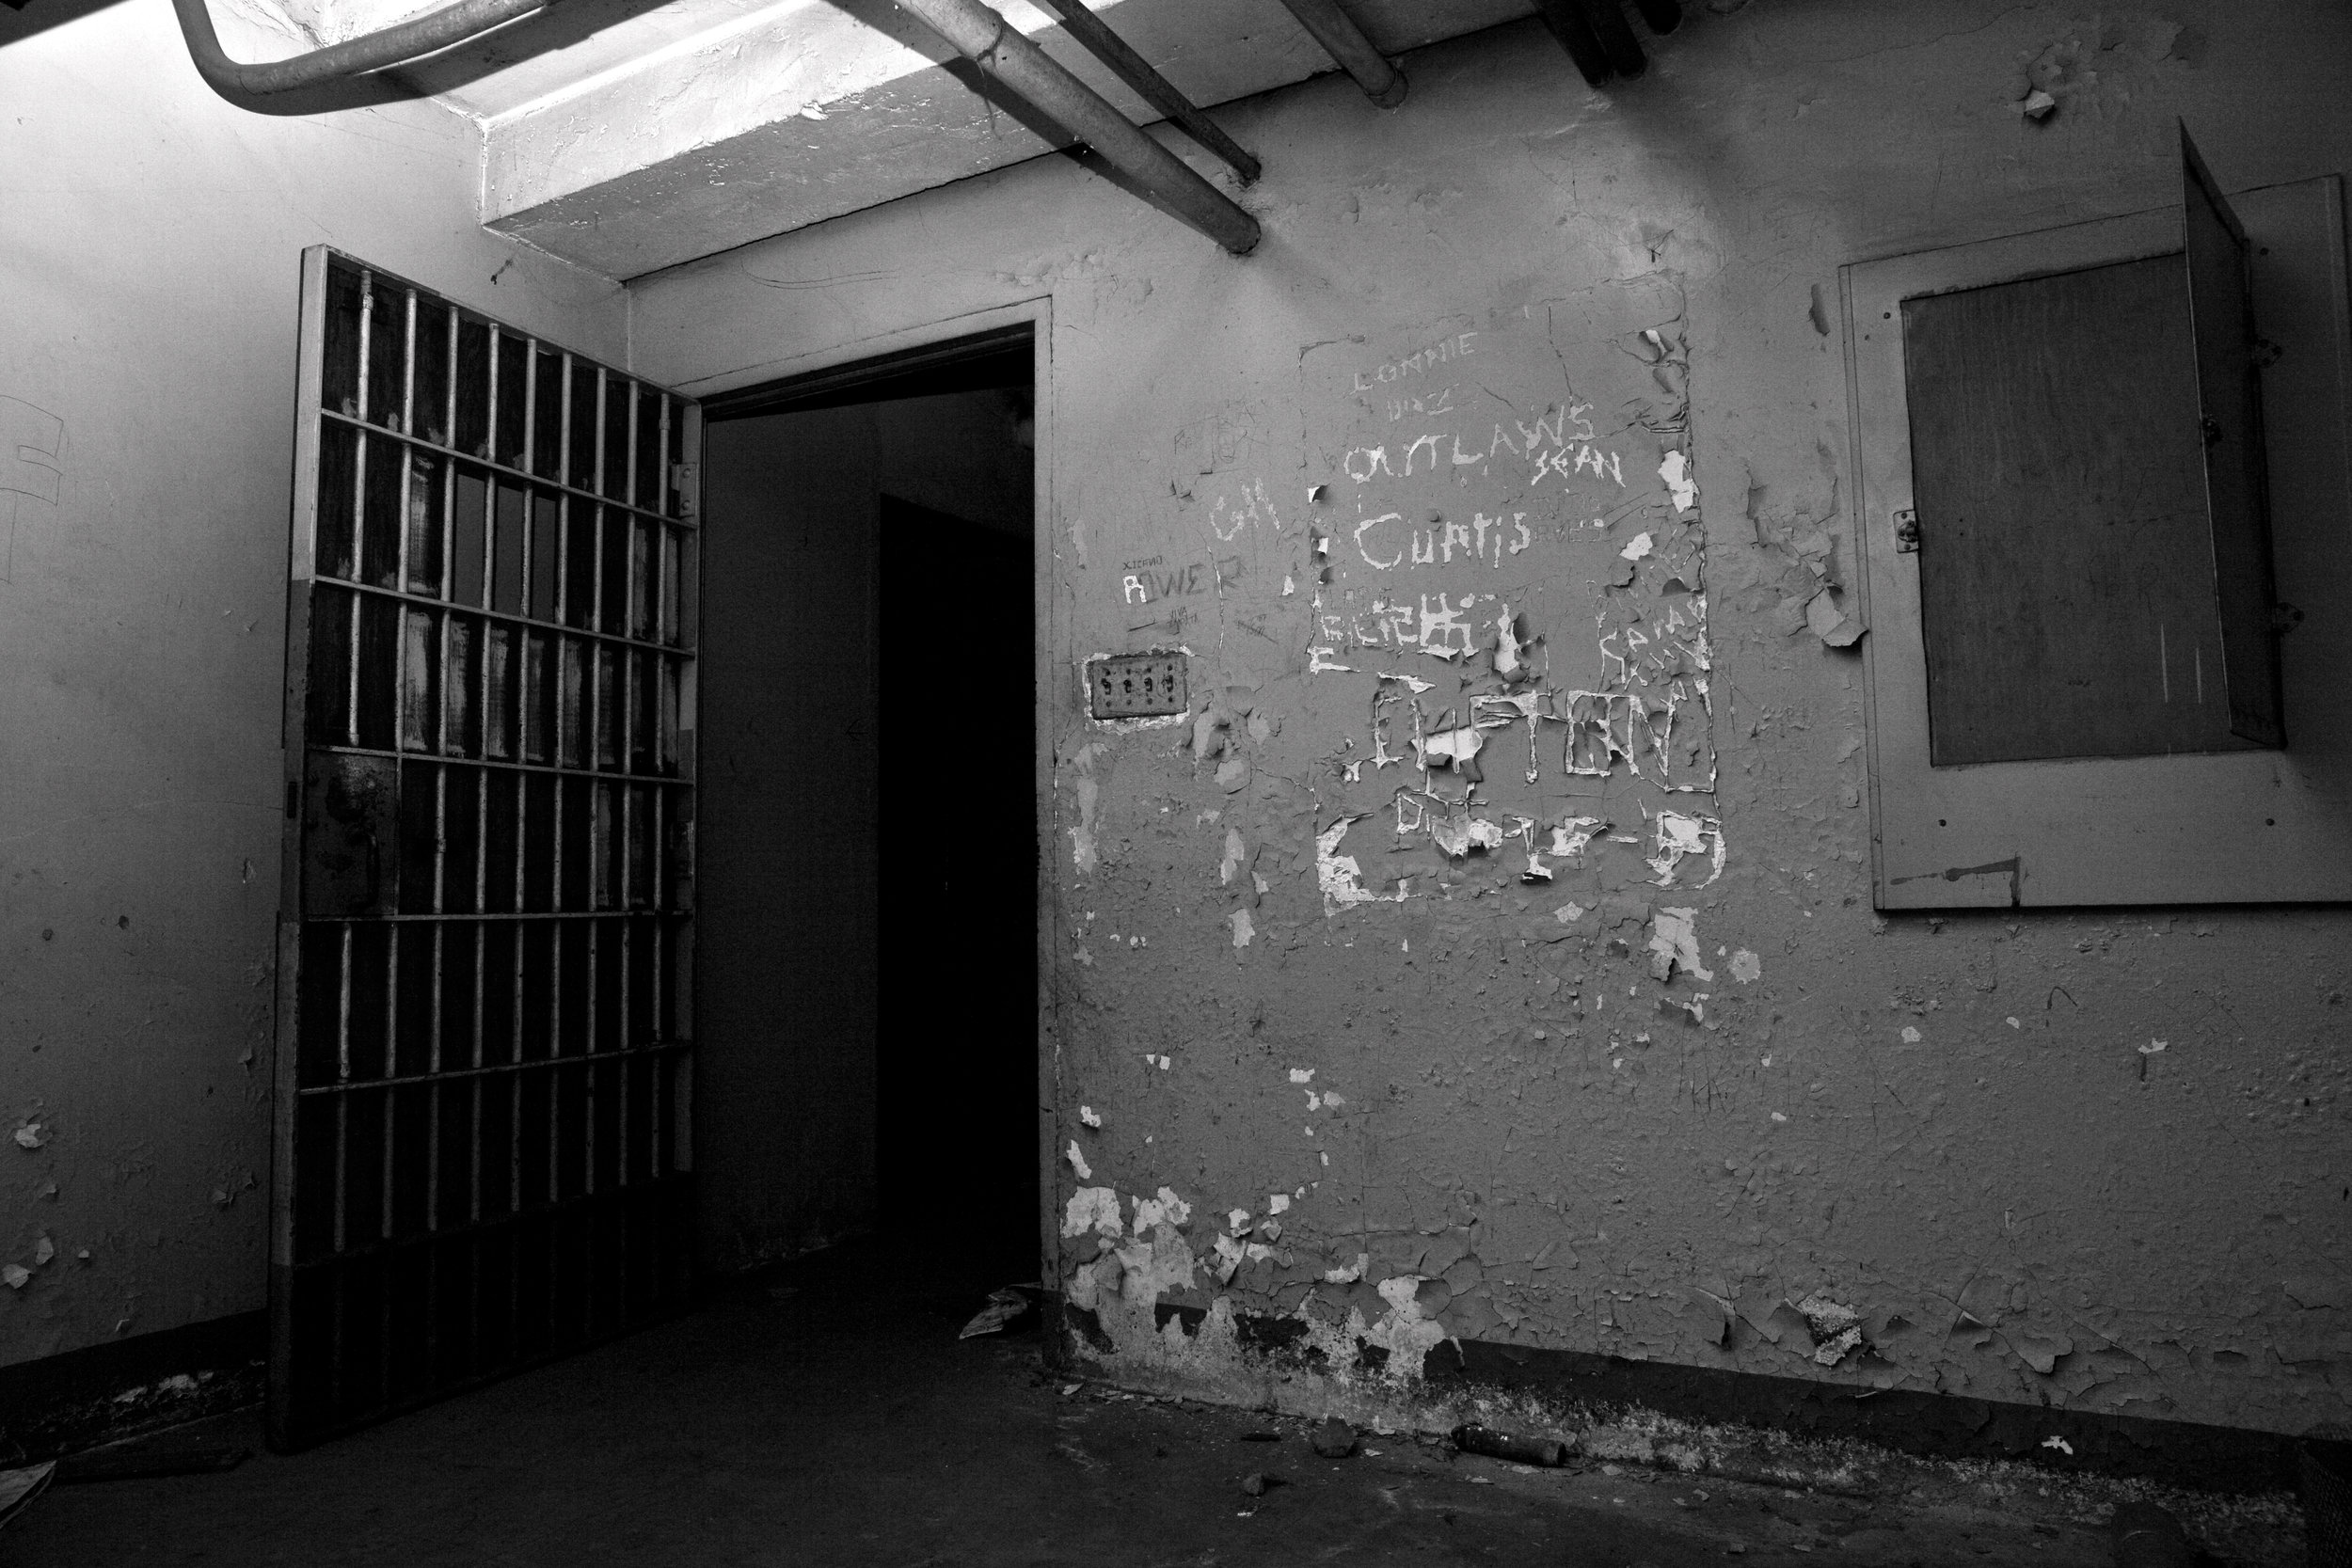 Lincoln Heights jail in Los Angeles. Credit: Brandon Johnson